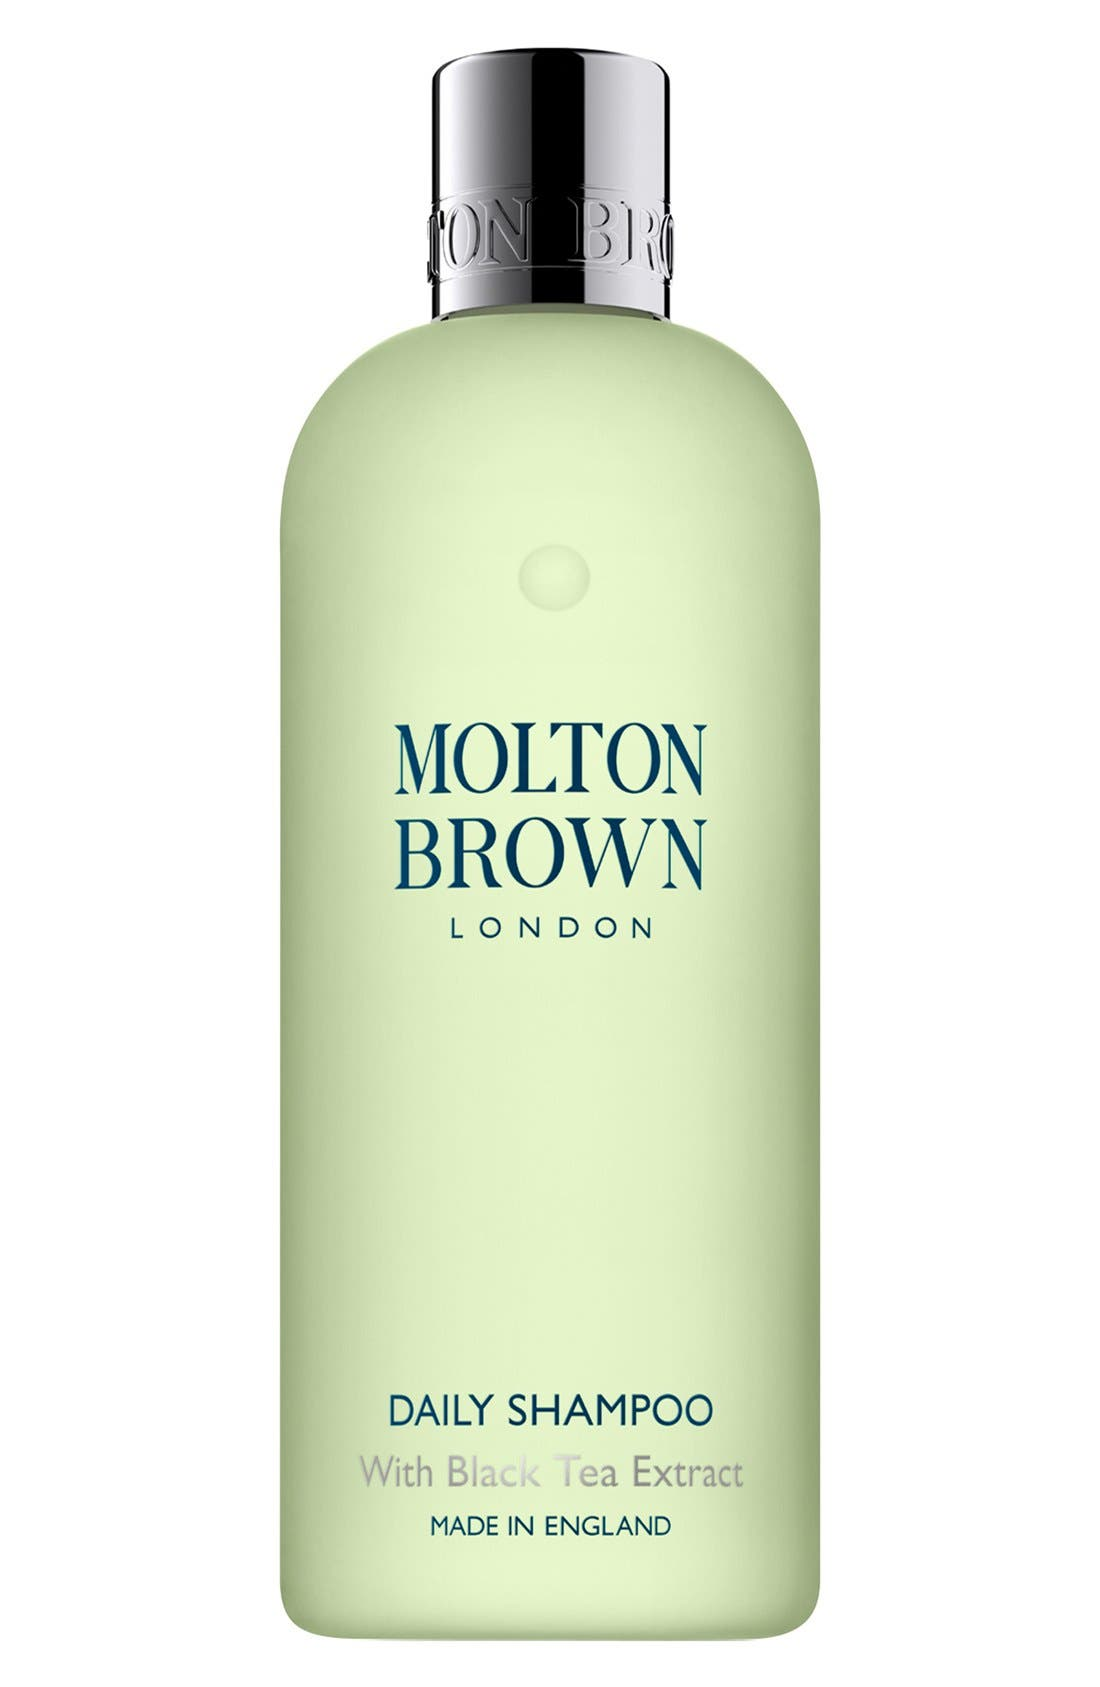 MOLTON BROWN London Daily Shampoo with Black Tea Extract